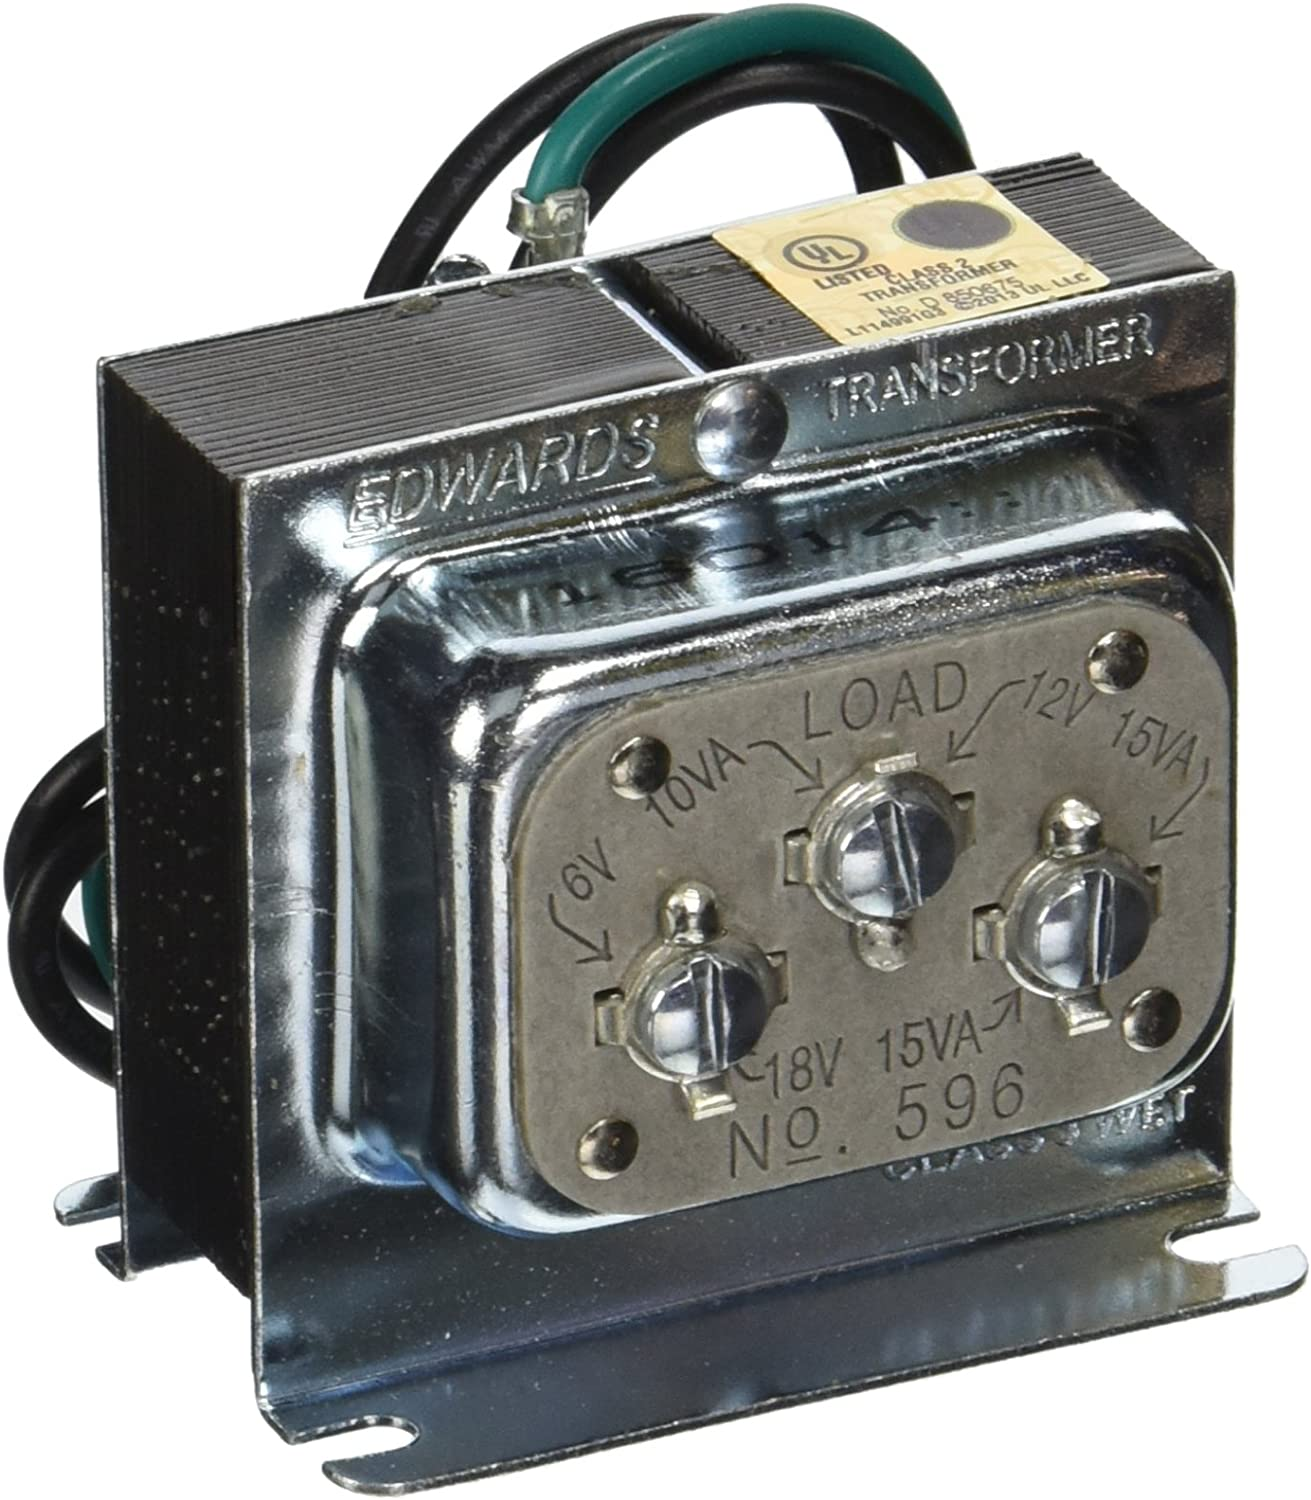 All stores are sold Edwards-Signaling 596 Class 2 Low Luxury Voltage Transformers Signaling